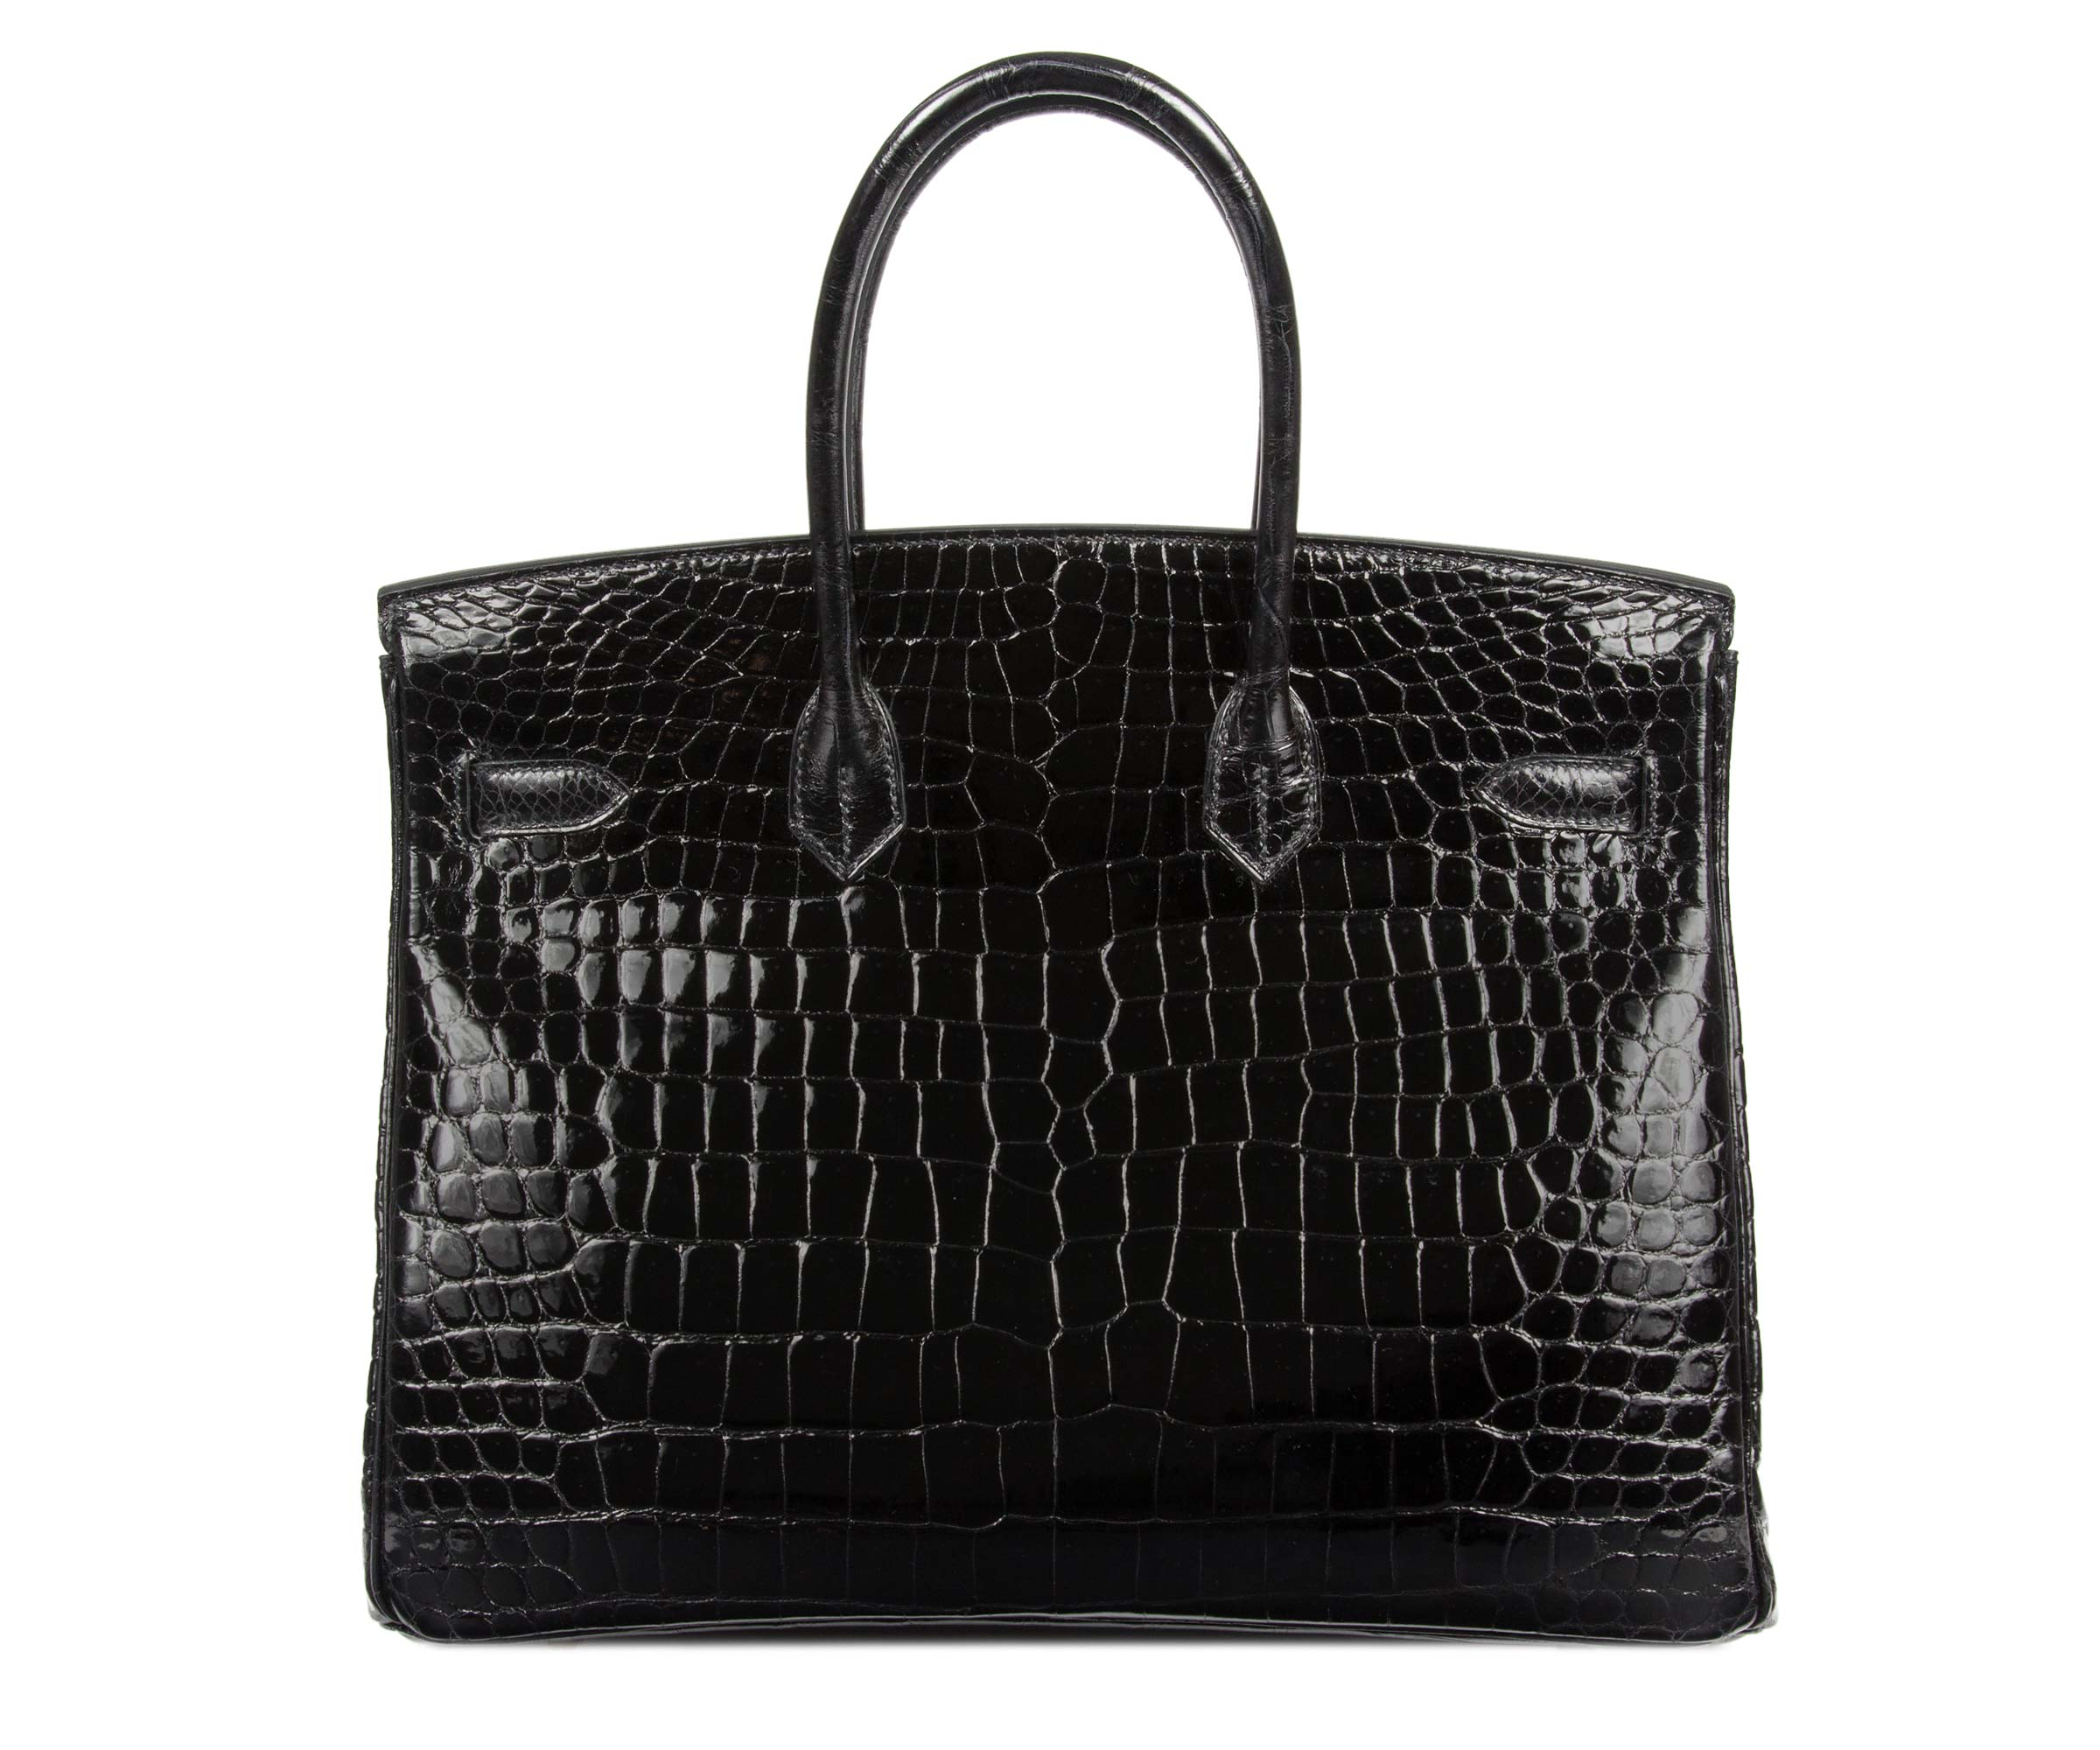 Hermes Birkin Black 35cm, Shiny Porosus Croc with Palladium Hardware